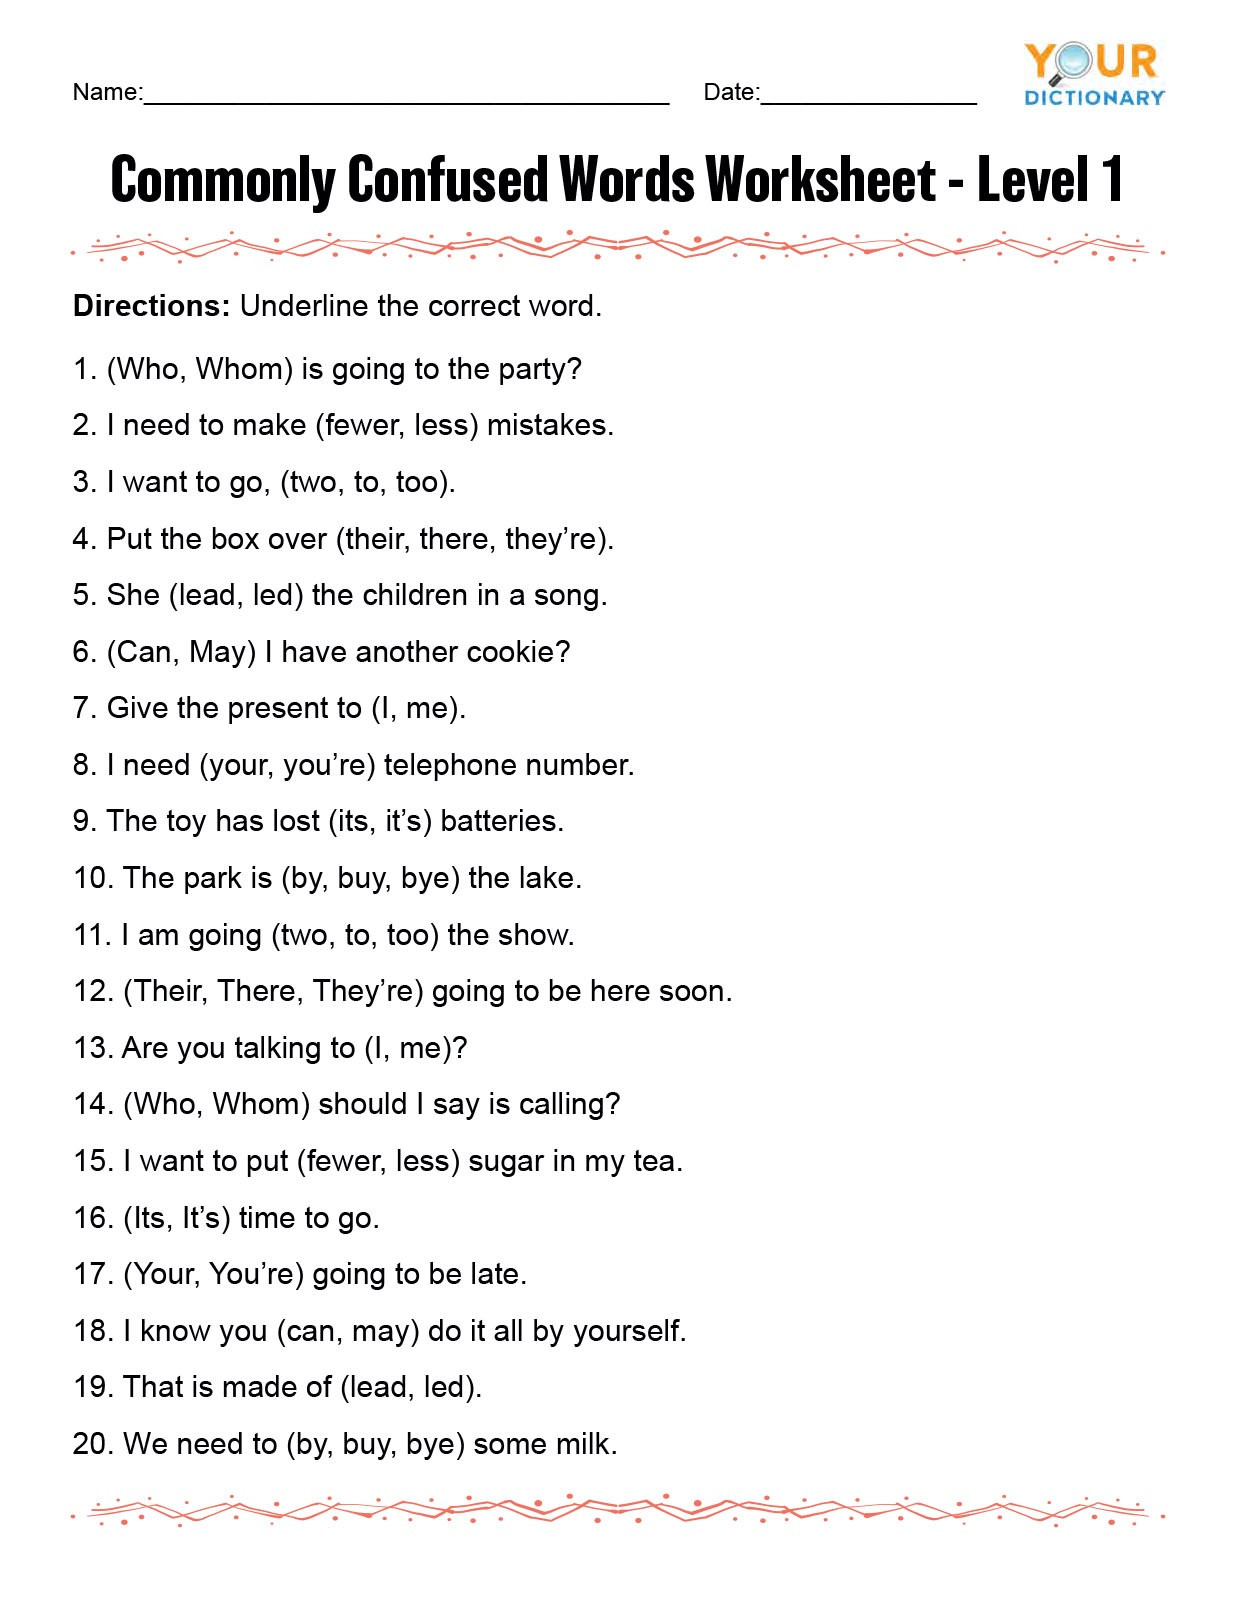 High School Spanish Worksheets Monly Confused Words Worksheet